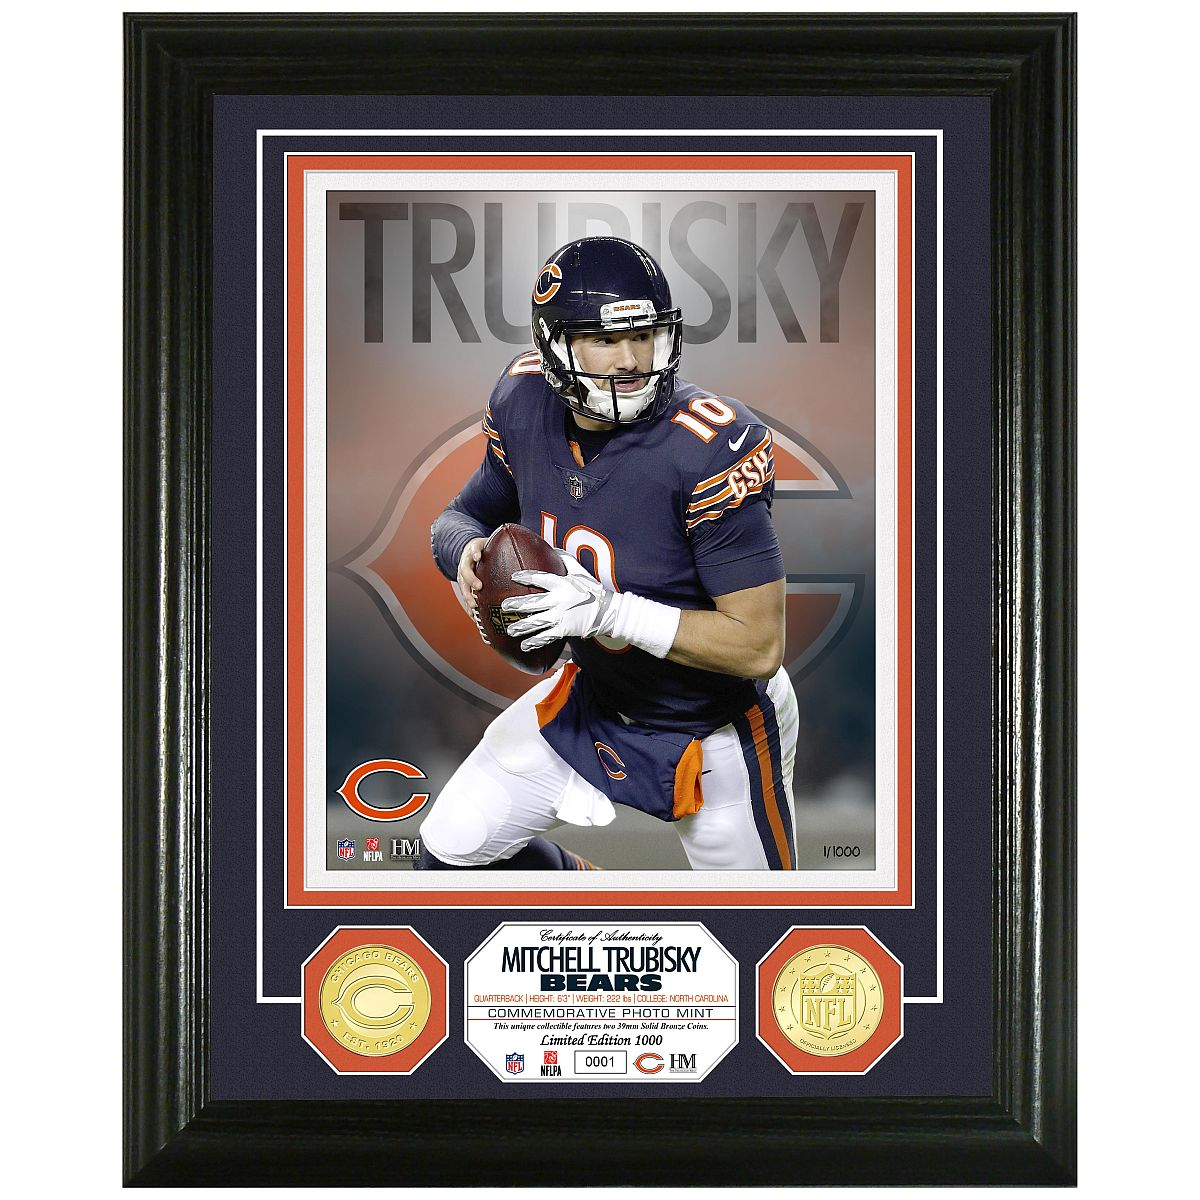 Mitch Trubisky Bronze Coin Photo Mint